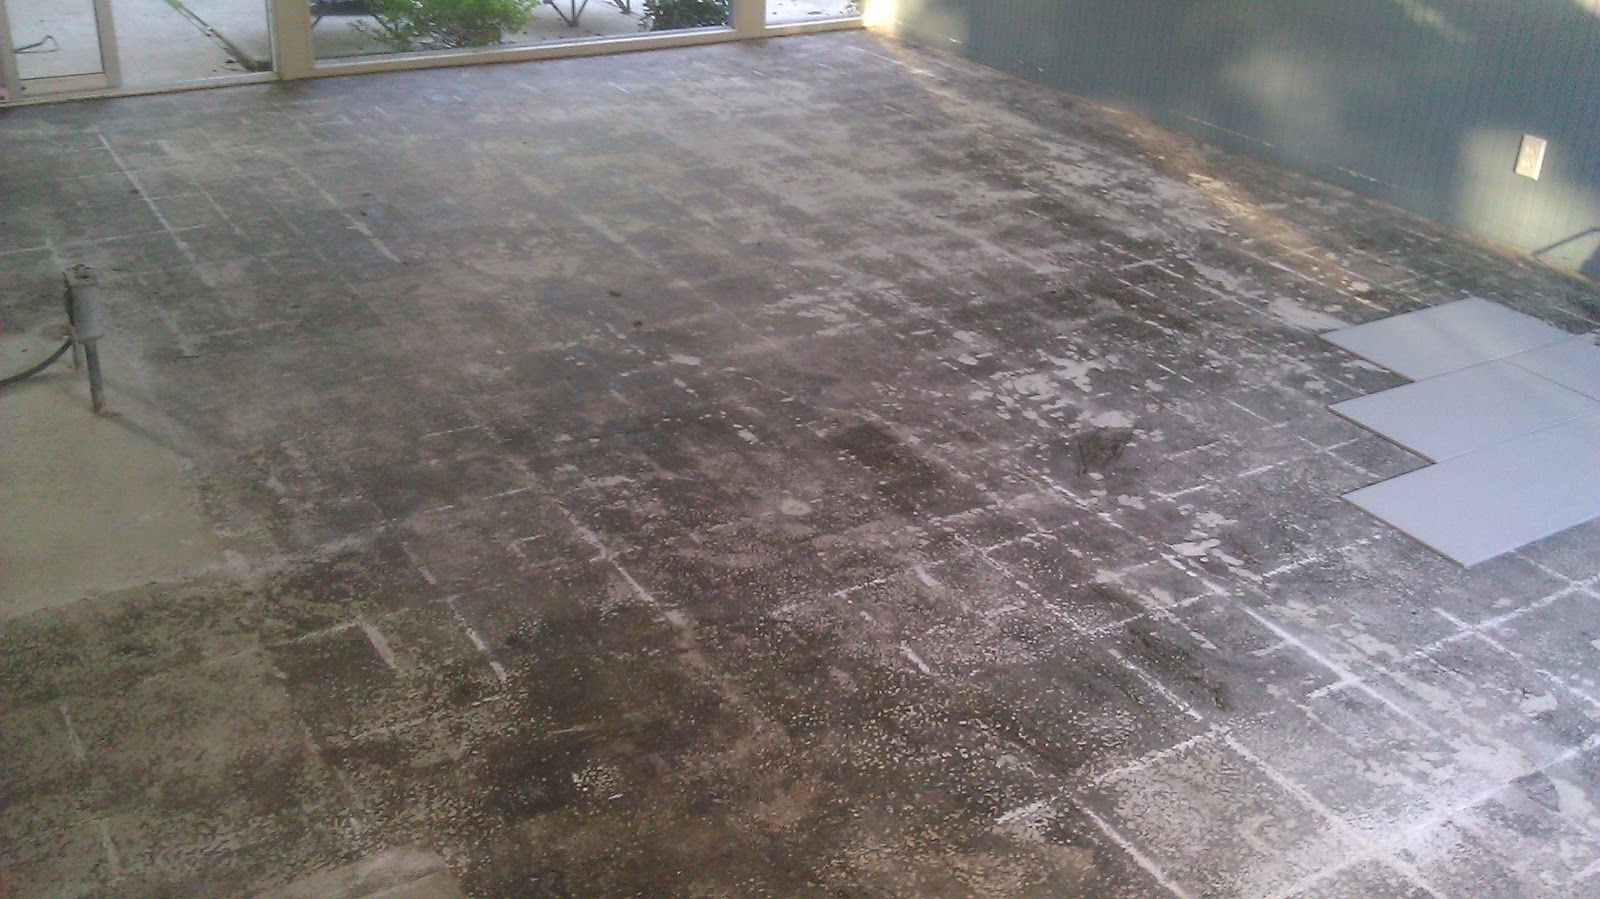 Eichler bug floor demolition complete prep for tile installation theyve been scraping the mastic for a day or so and here is what the floor looks like after removing vcts and scraping most of the mastic dailygadgetfo Image collections